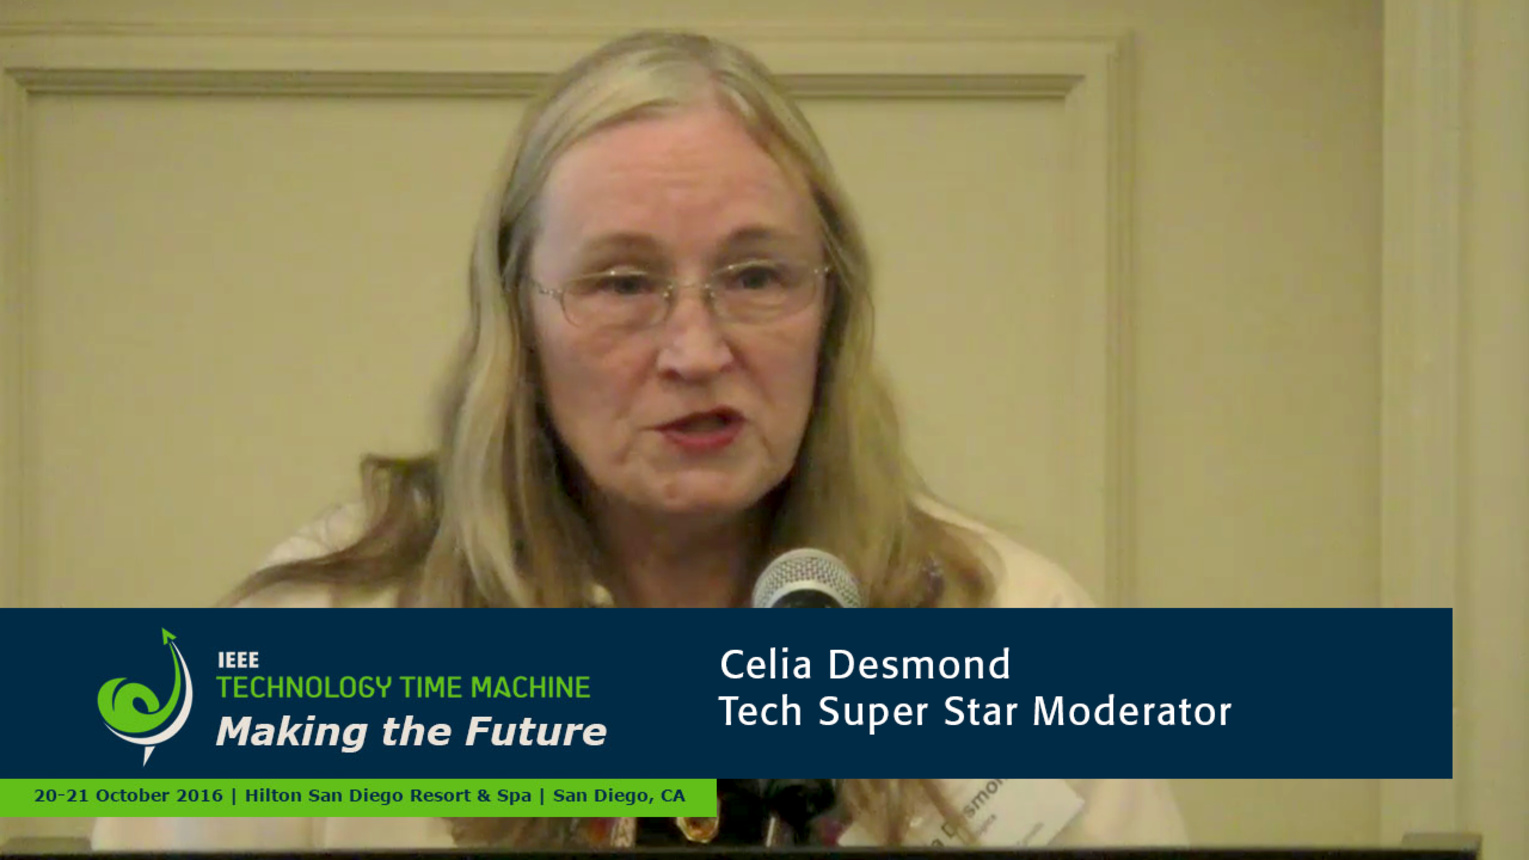 Tech Super Stars Panel Introduction - Celia Desmond: 2016 Technology Time Machine